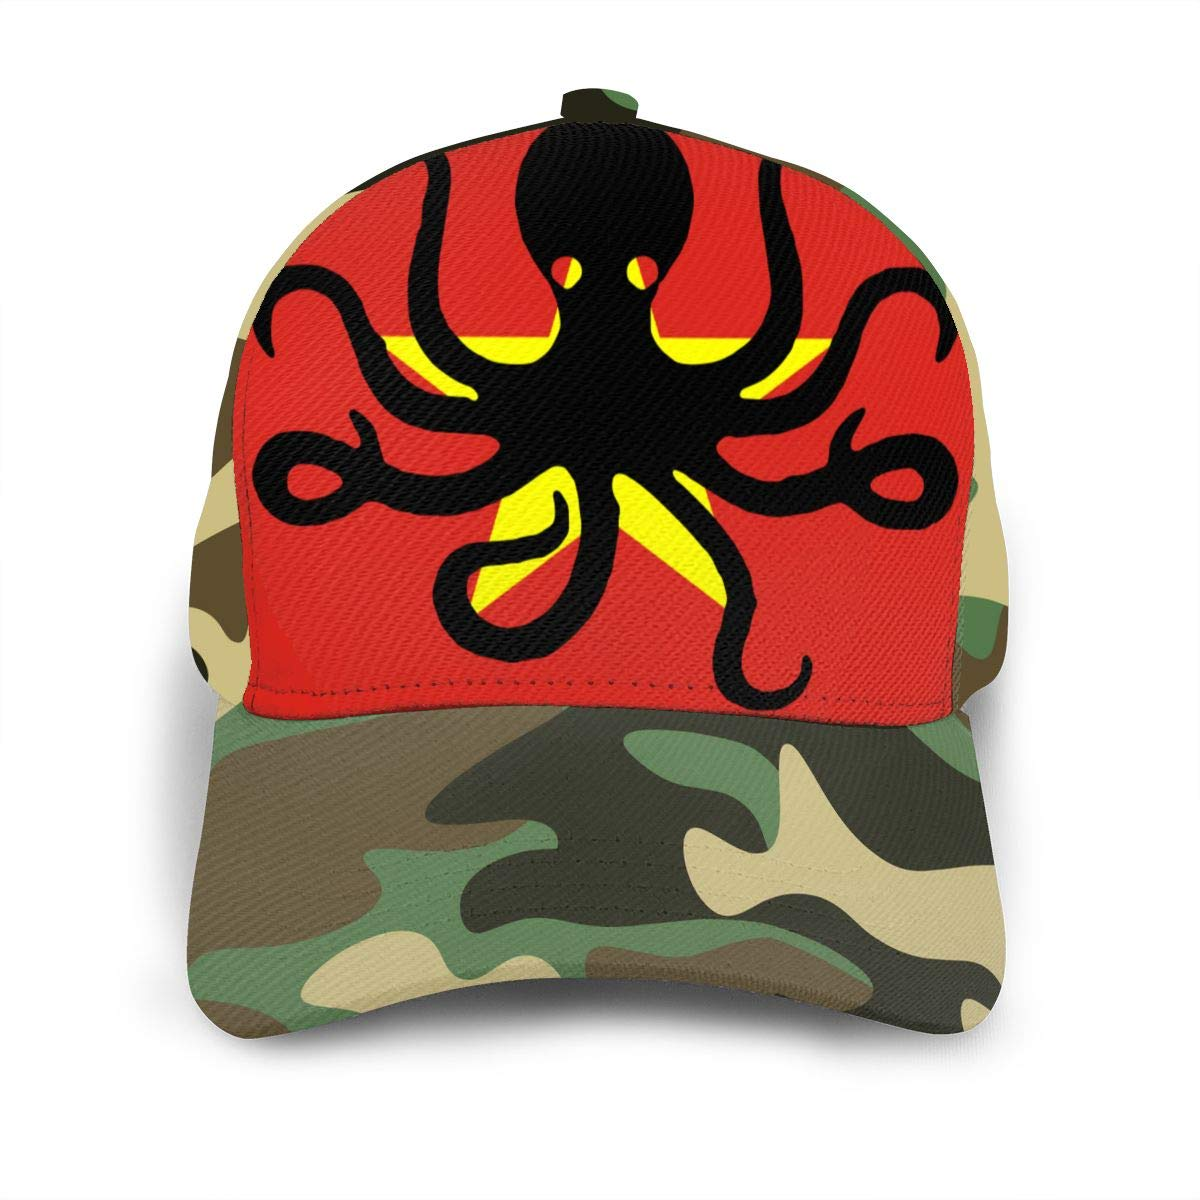 Y94OIW@MAO Octopus Vietnam Flag Baseball Cap for Men and Women Cotton Snapback Cap